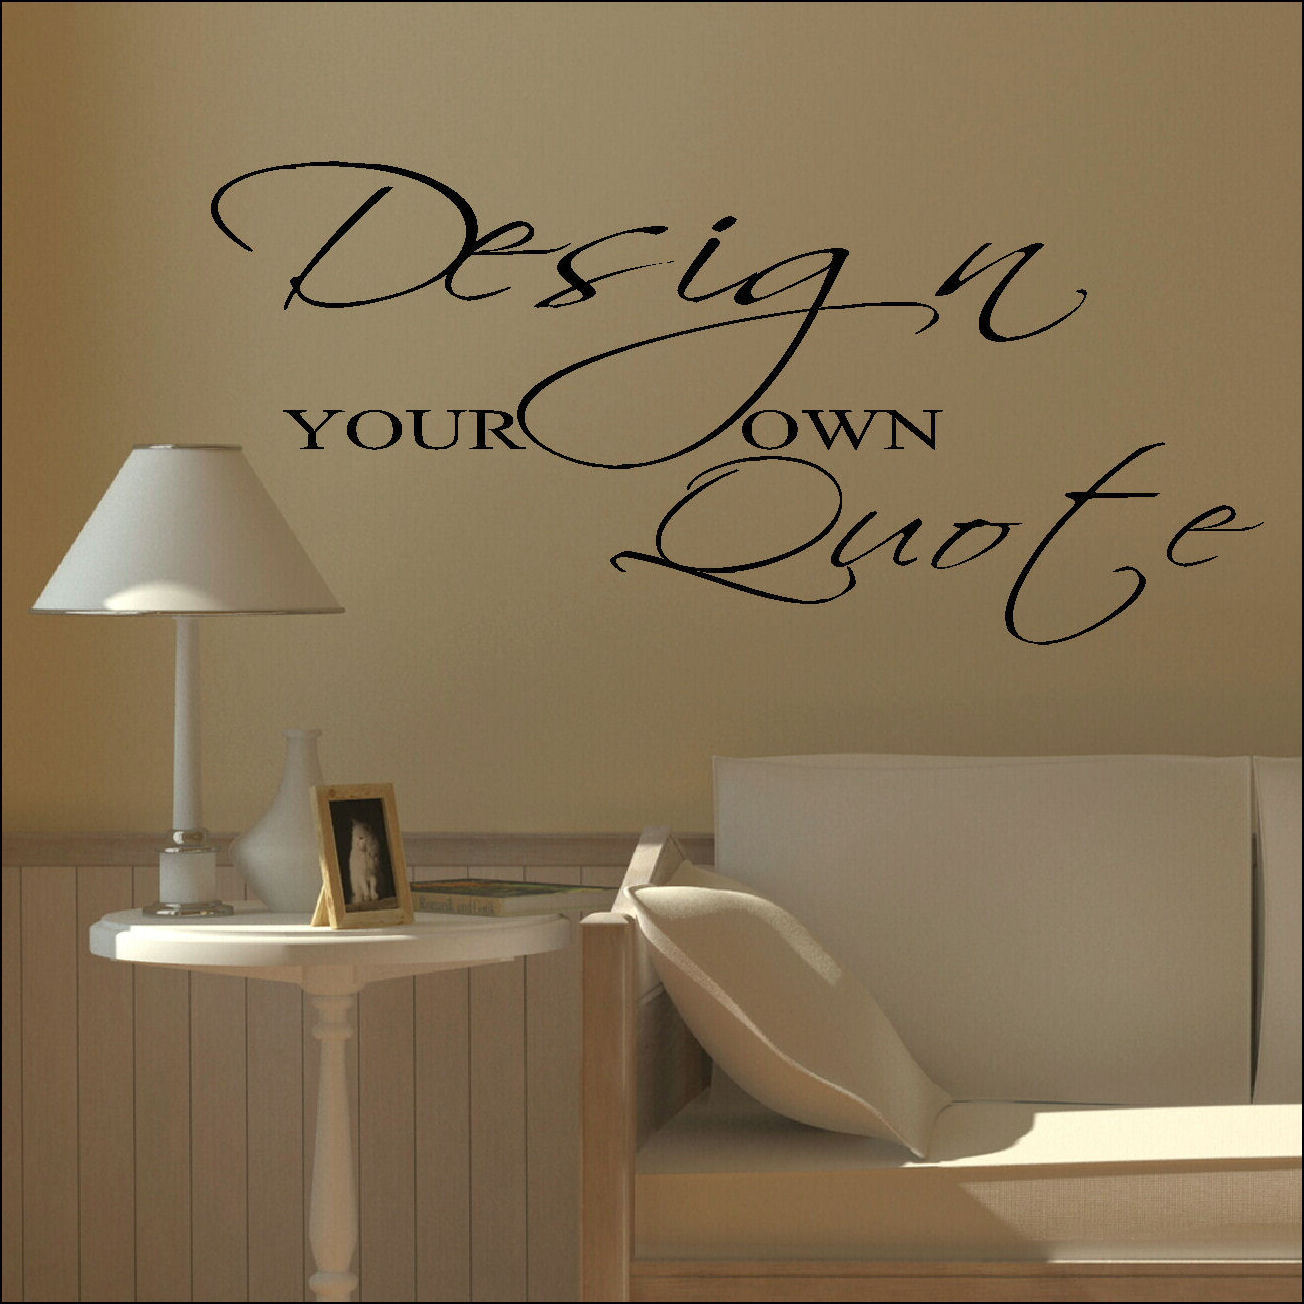 Design your own small custom wall sticker quote bespoke transfer vinyl decal